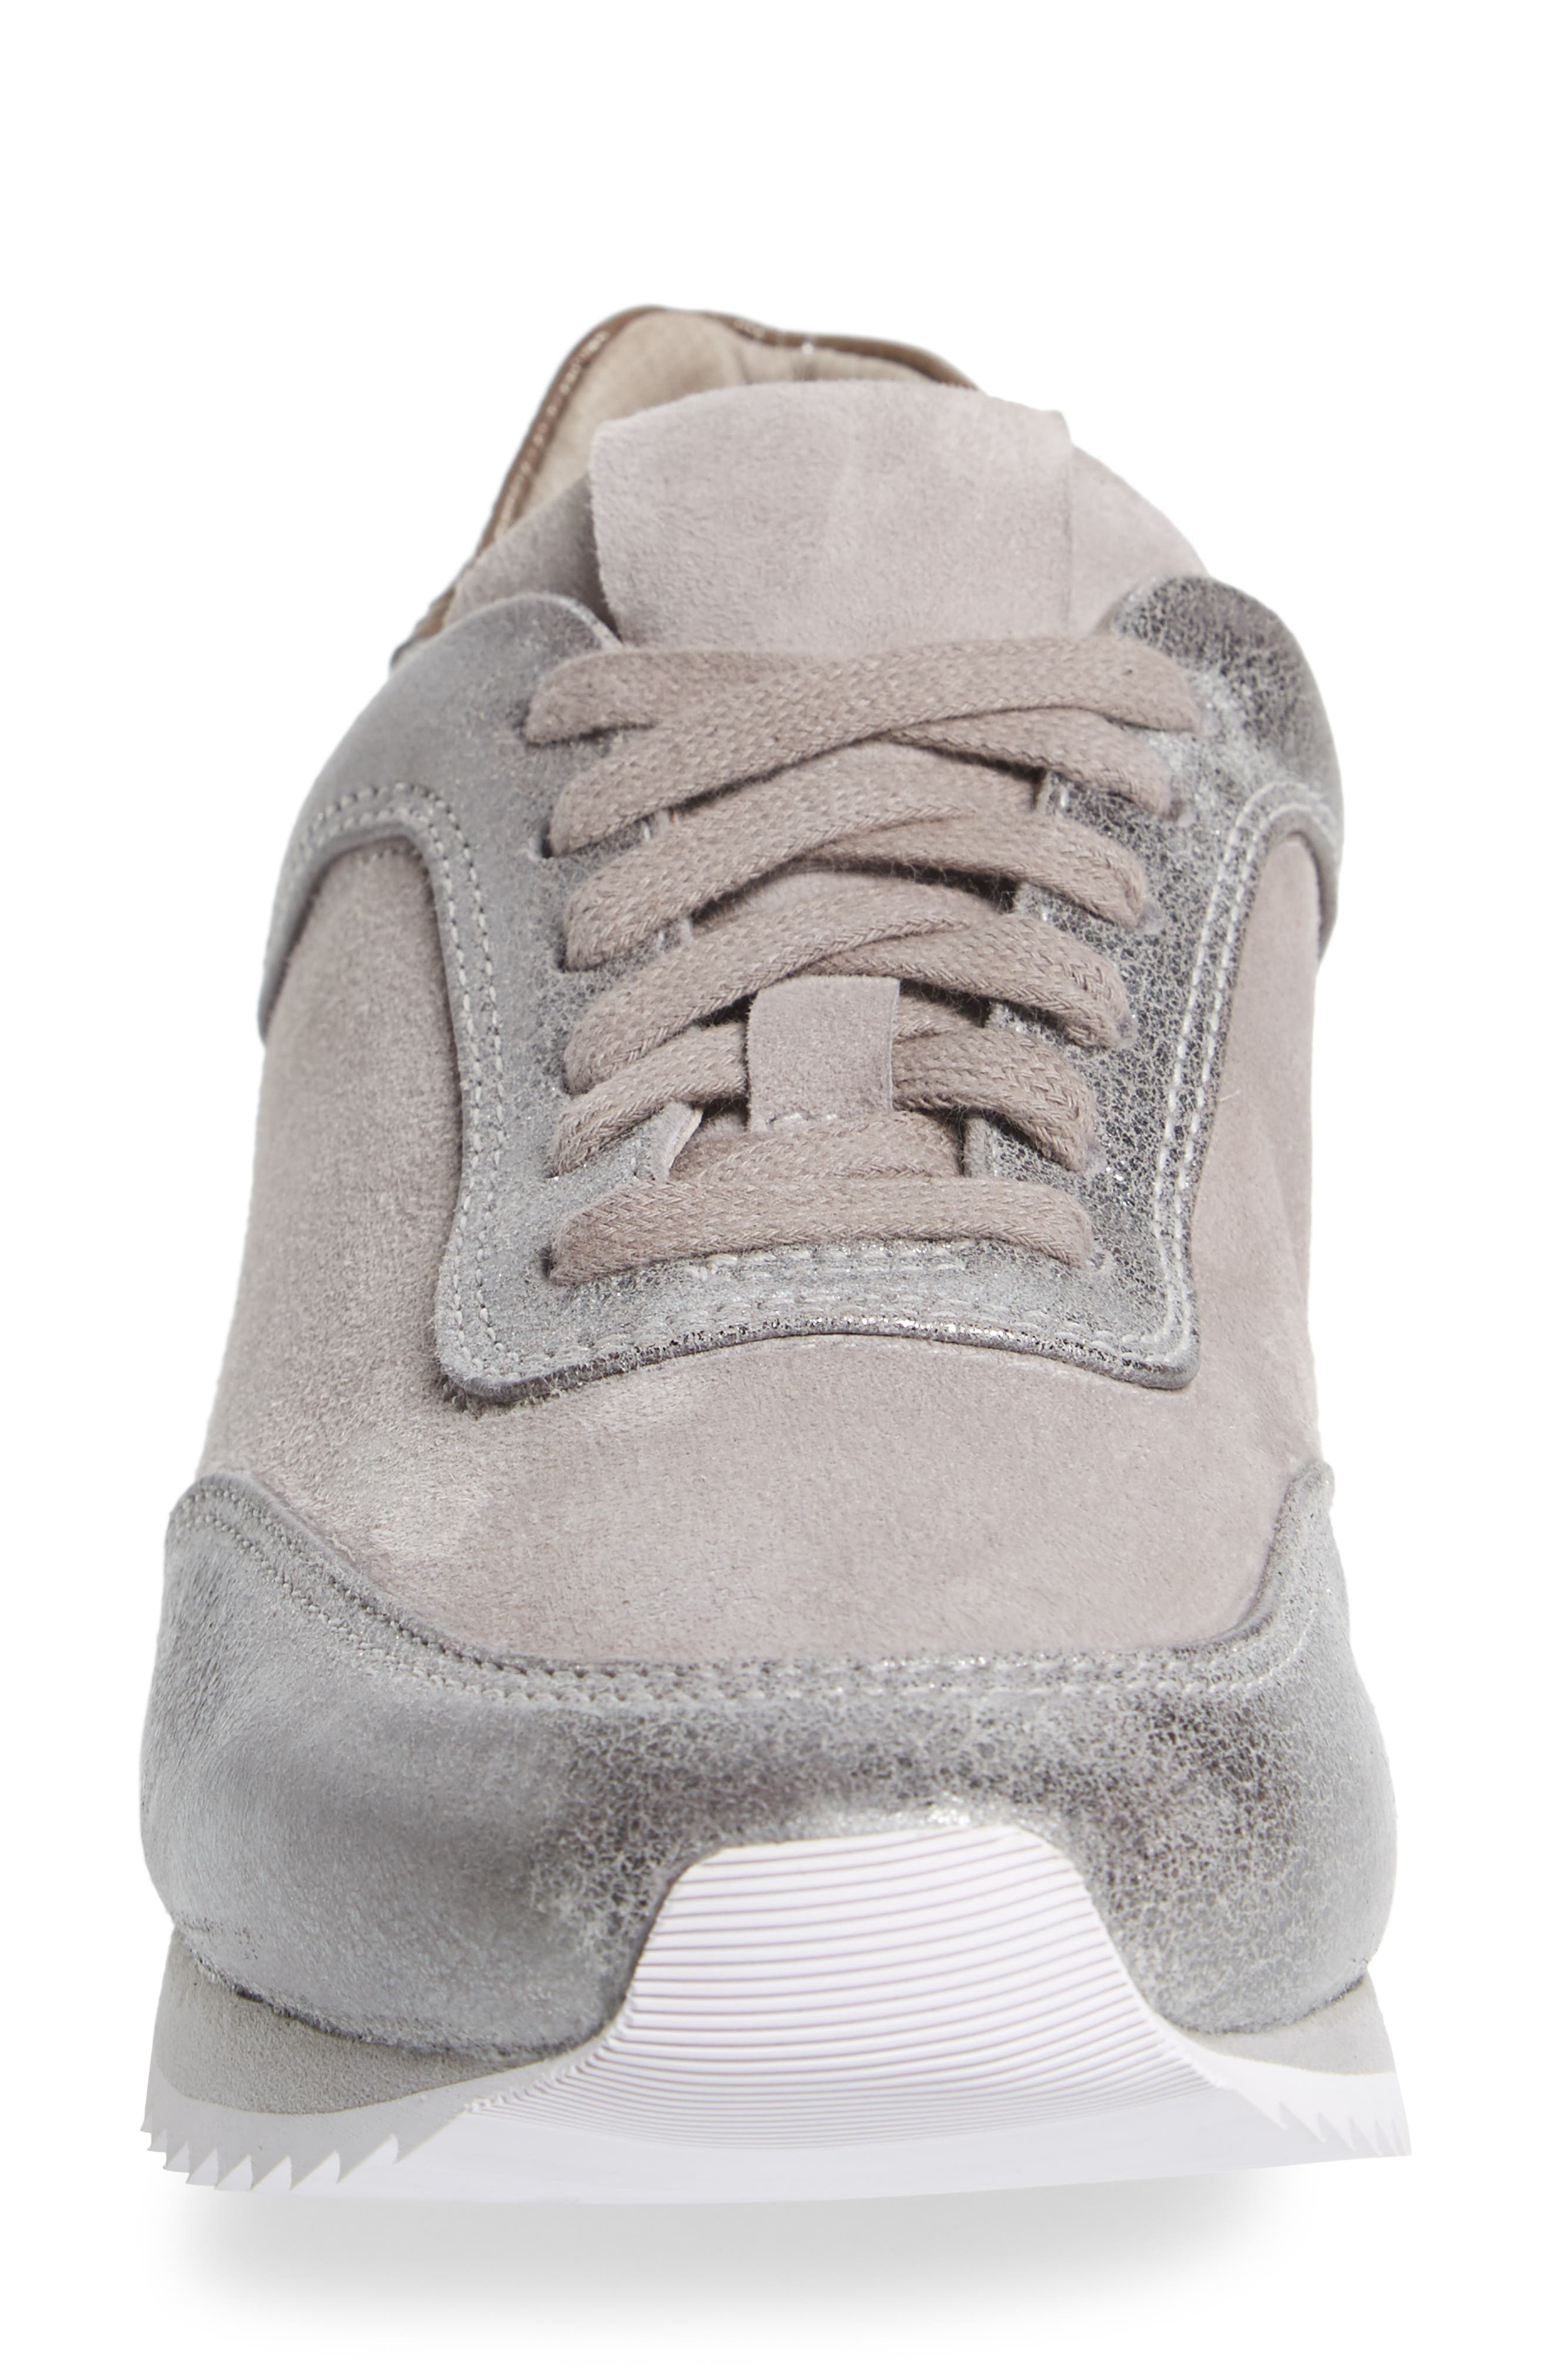 Jules Sneaker,                             Alternate thumbnail 4, color,                             Pewter Leather/ Suede